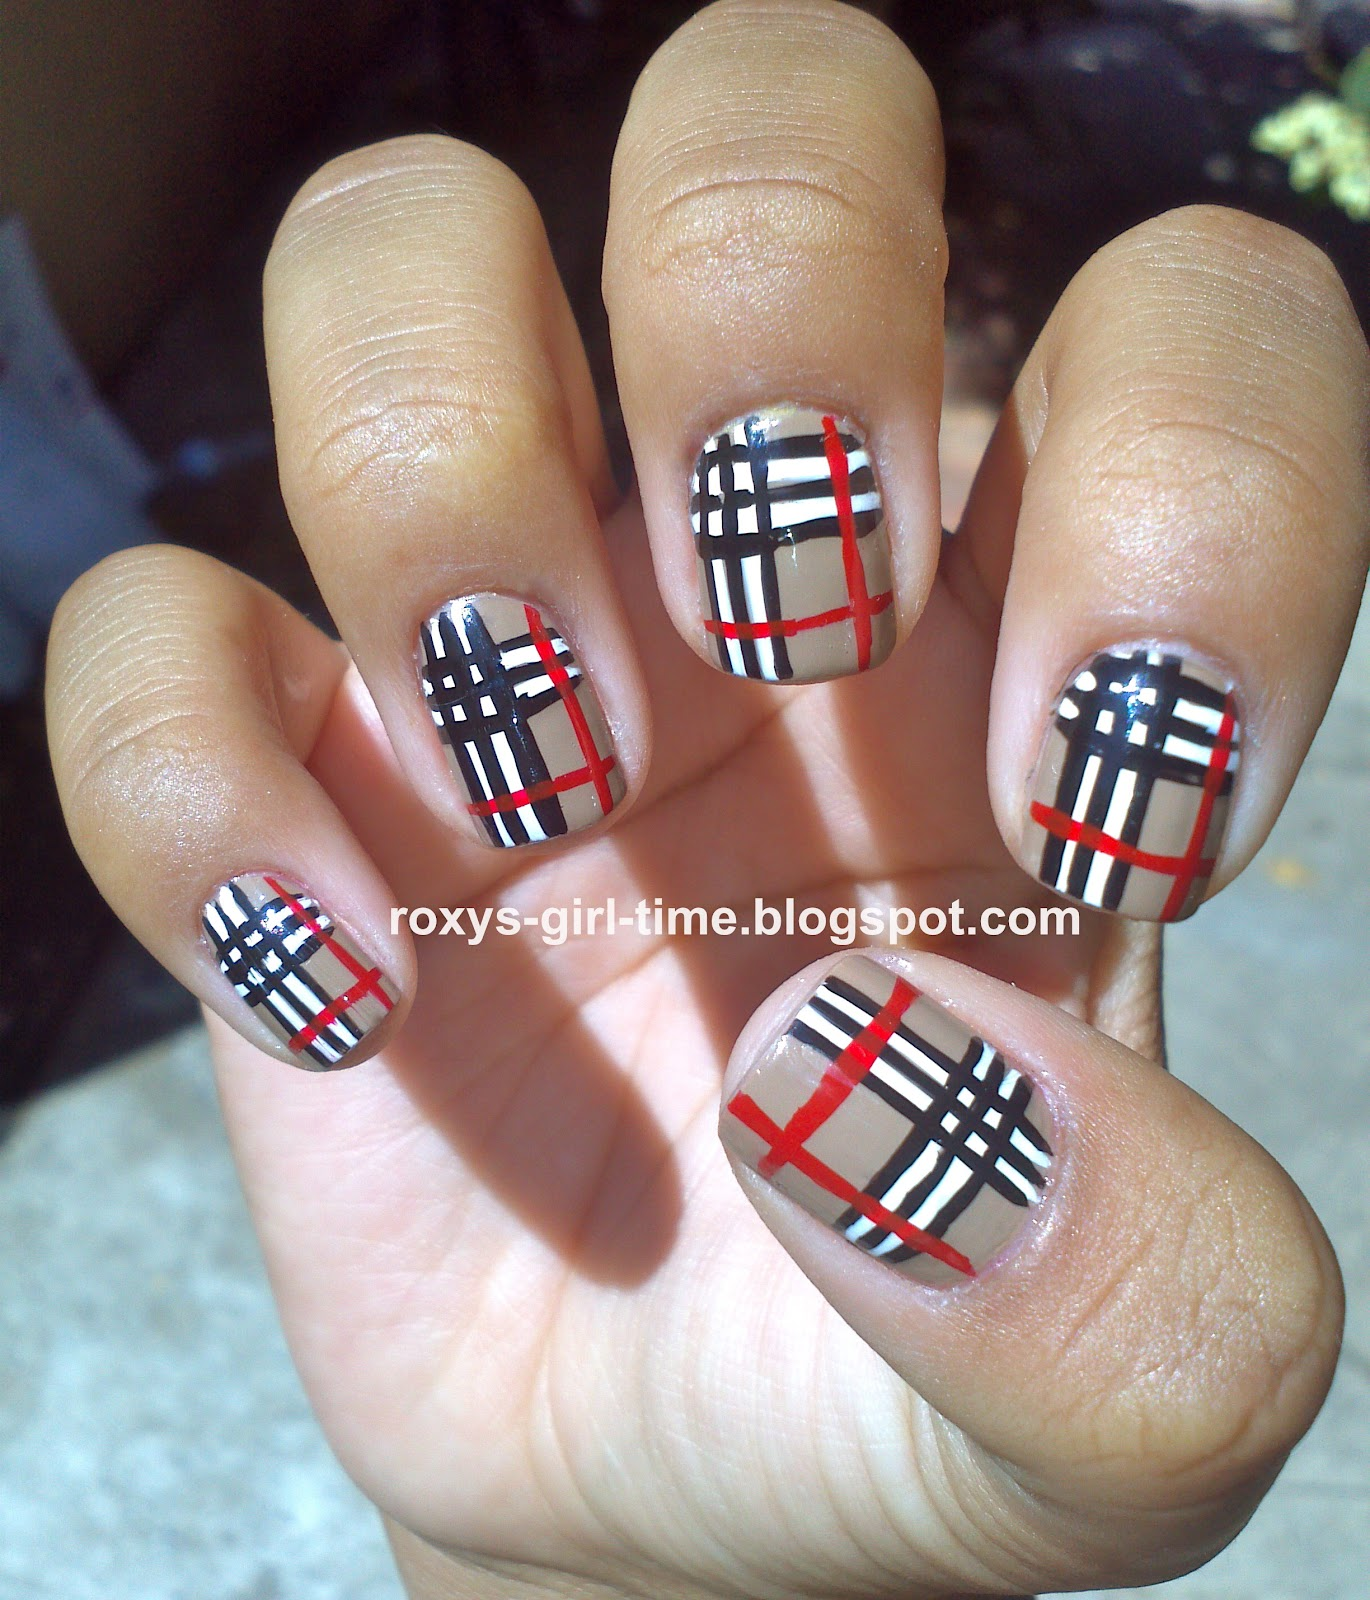 Roxys girl time notd burberry manicure i would describe how to do this manicure myself but nailsbyimichelley did such a great job in her video why deny you the opportunity to see and try it out solutioingenieria Gallery